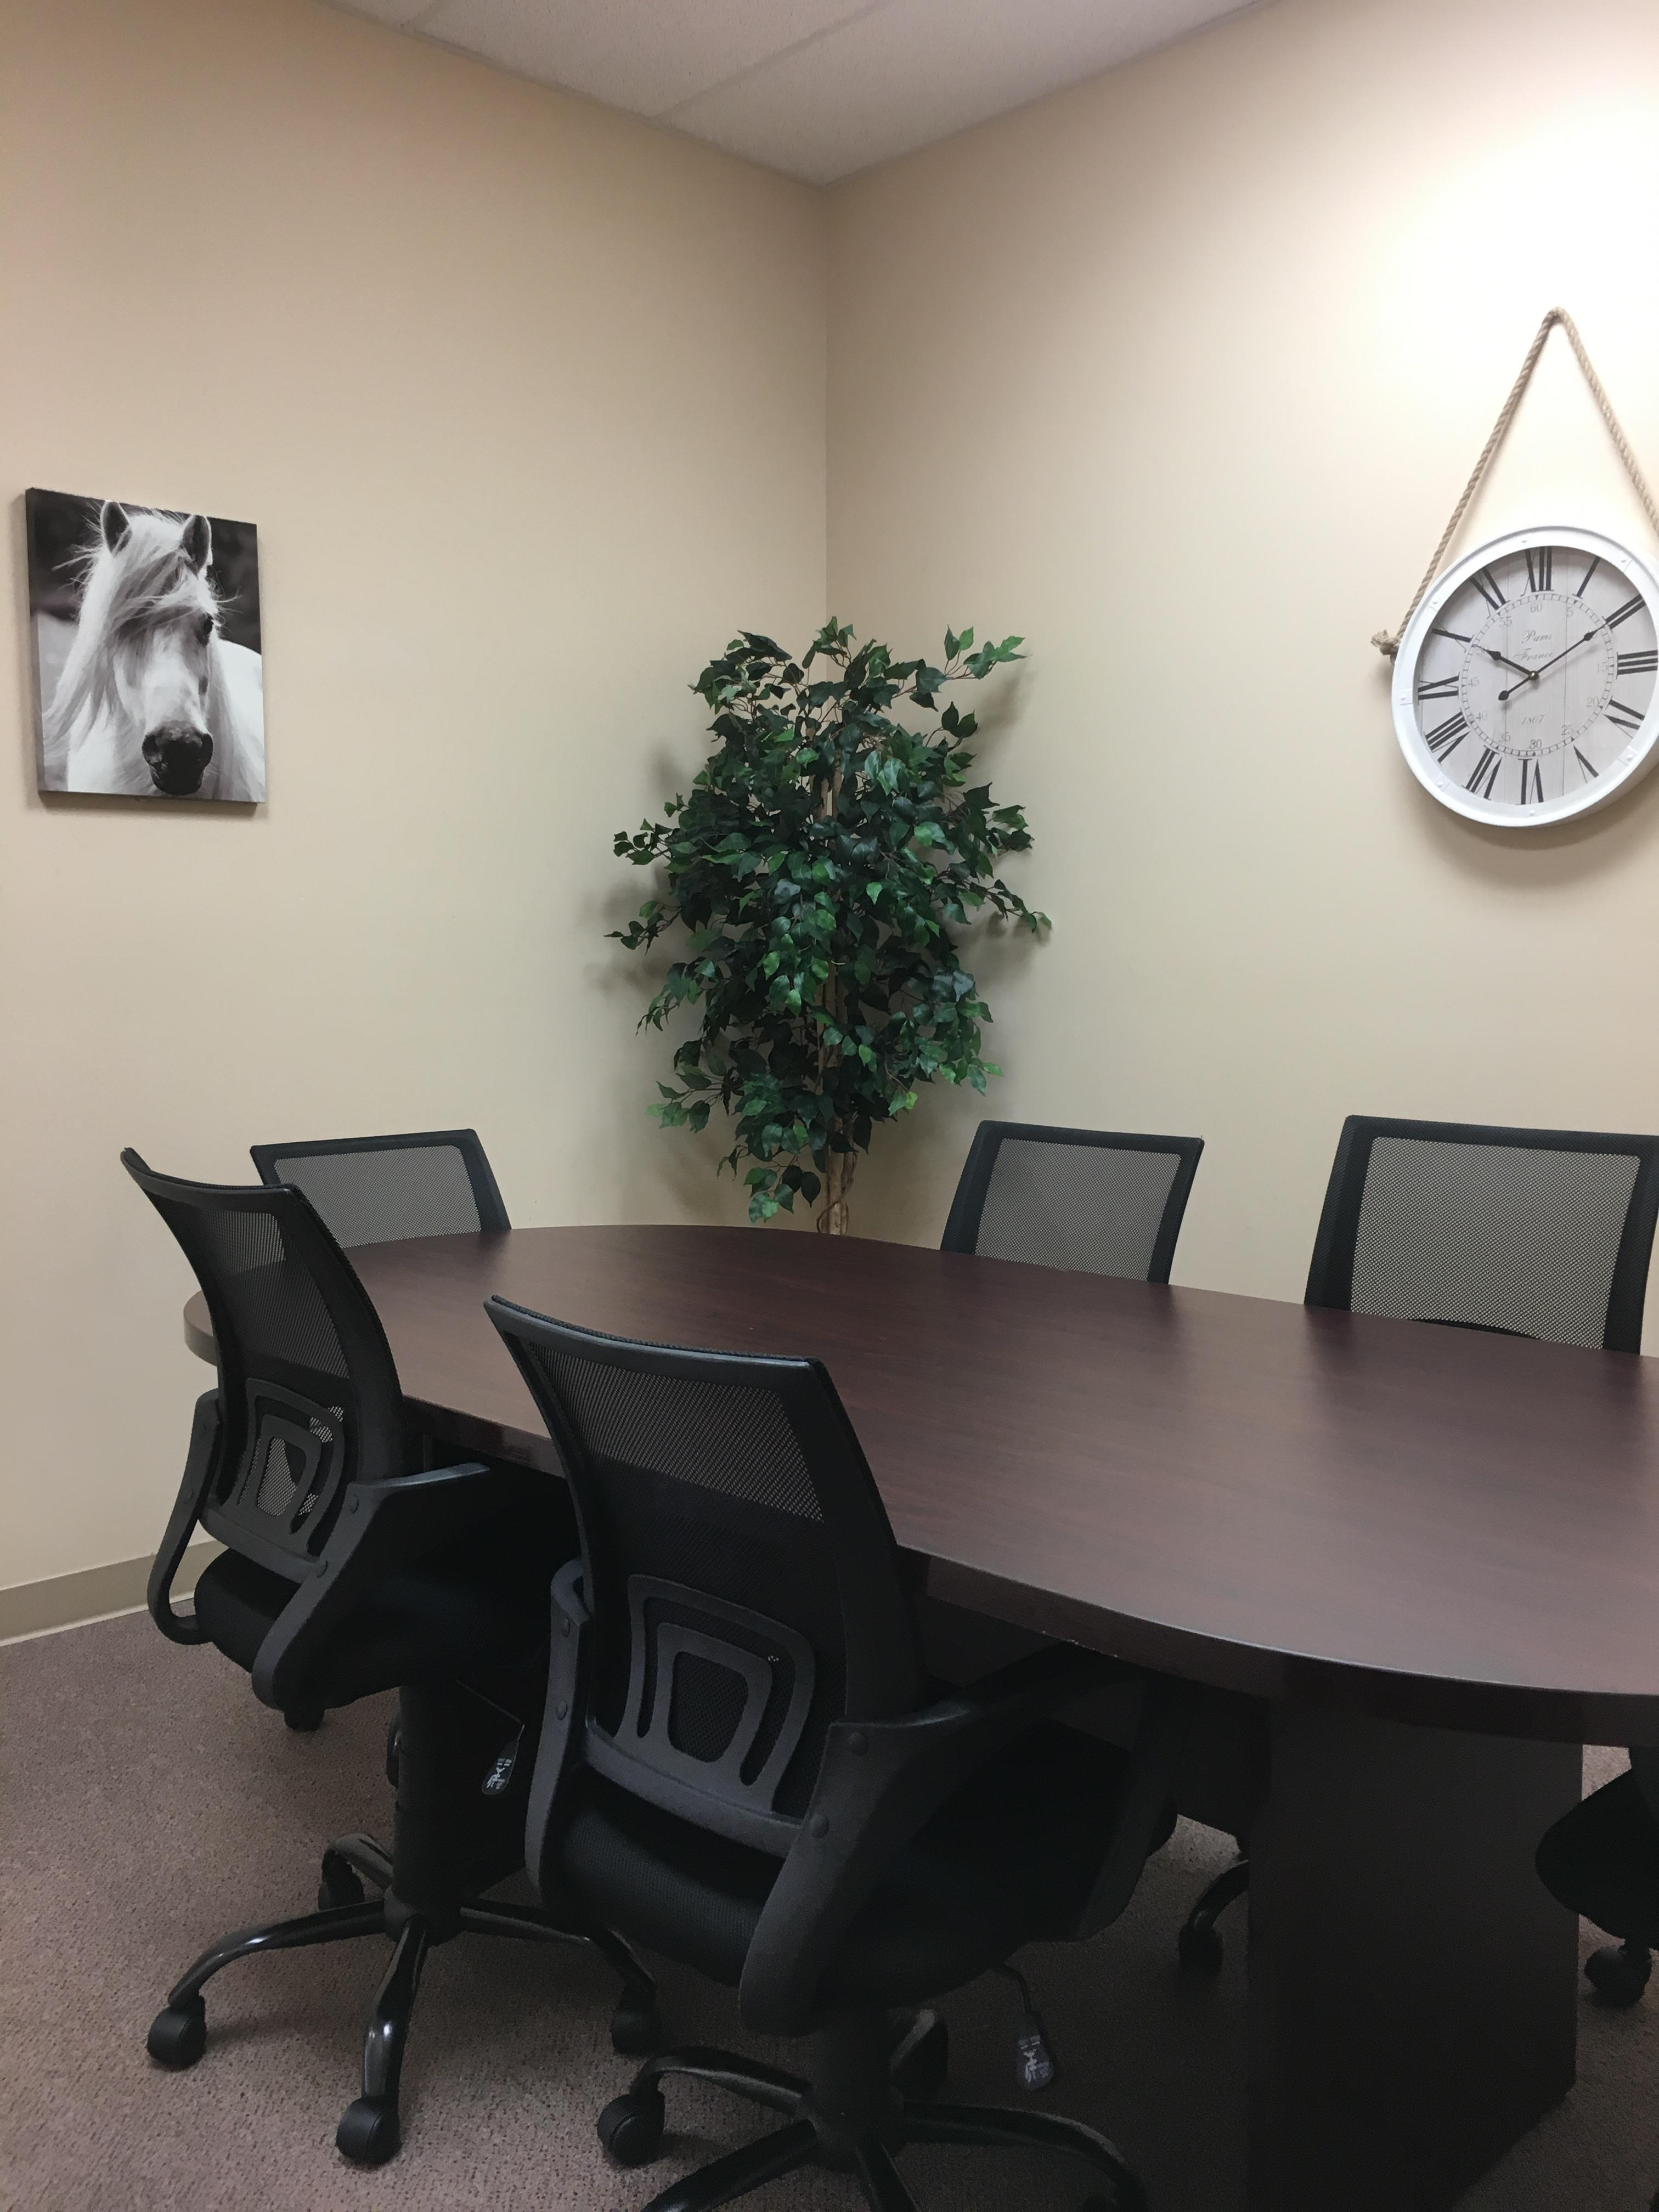 Sharicom Workspace at Eastland - The Eclipse Board Room